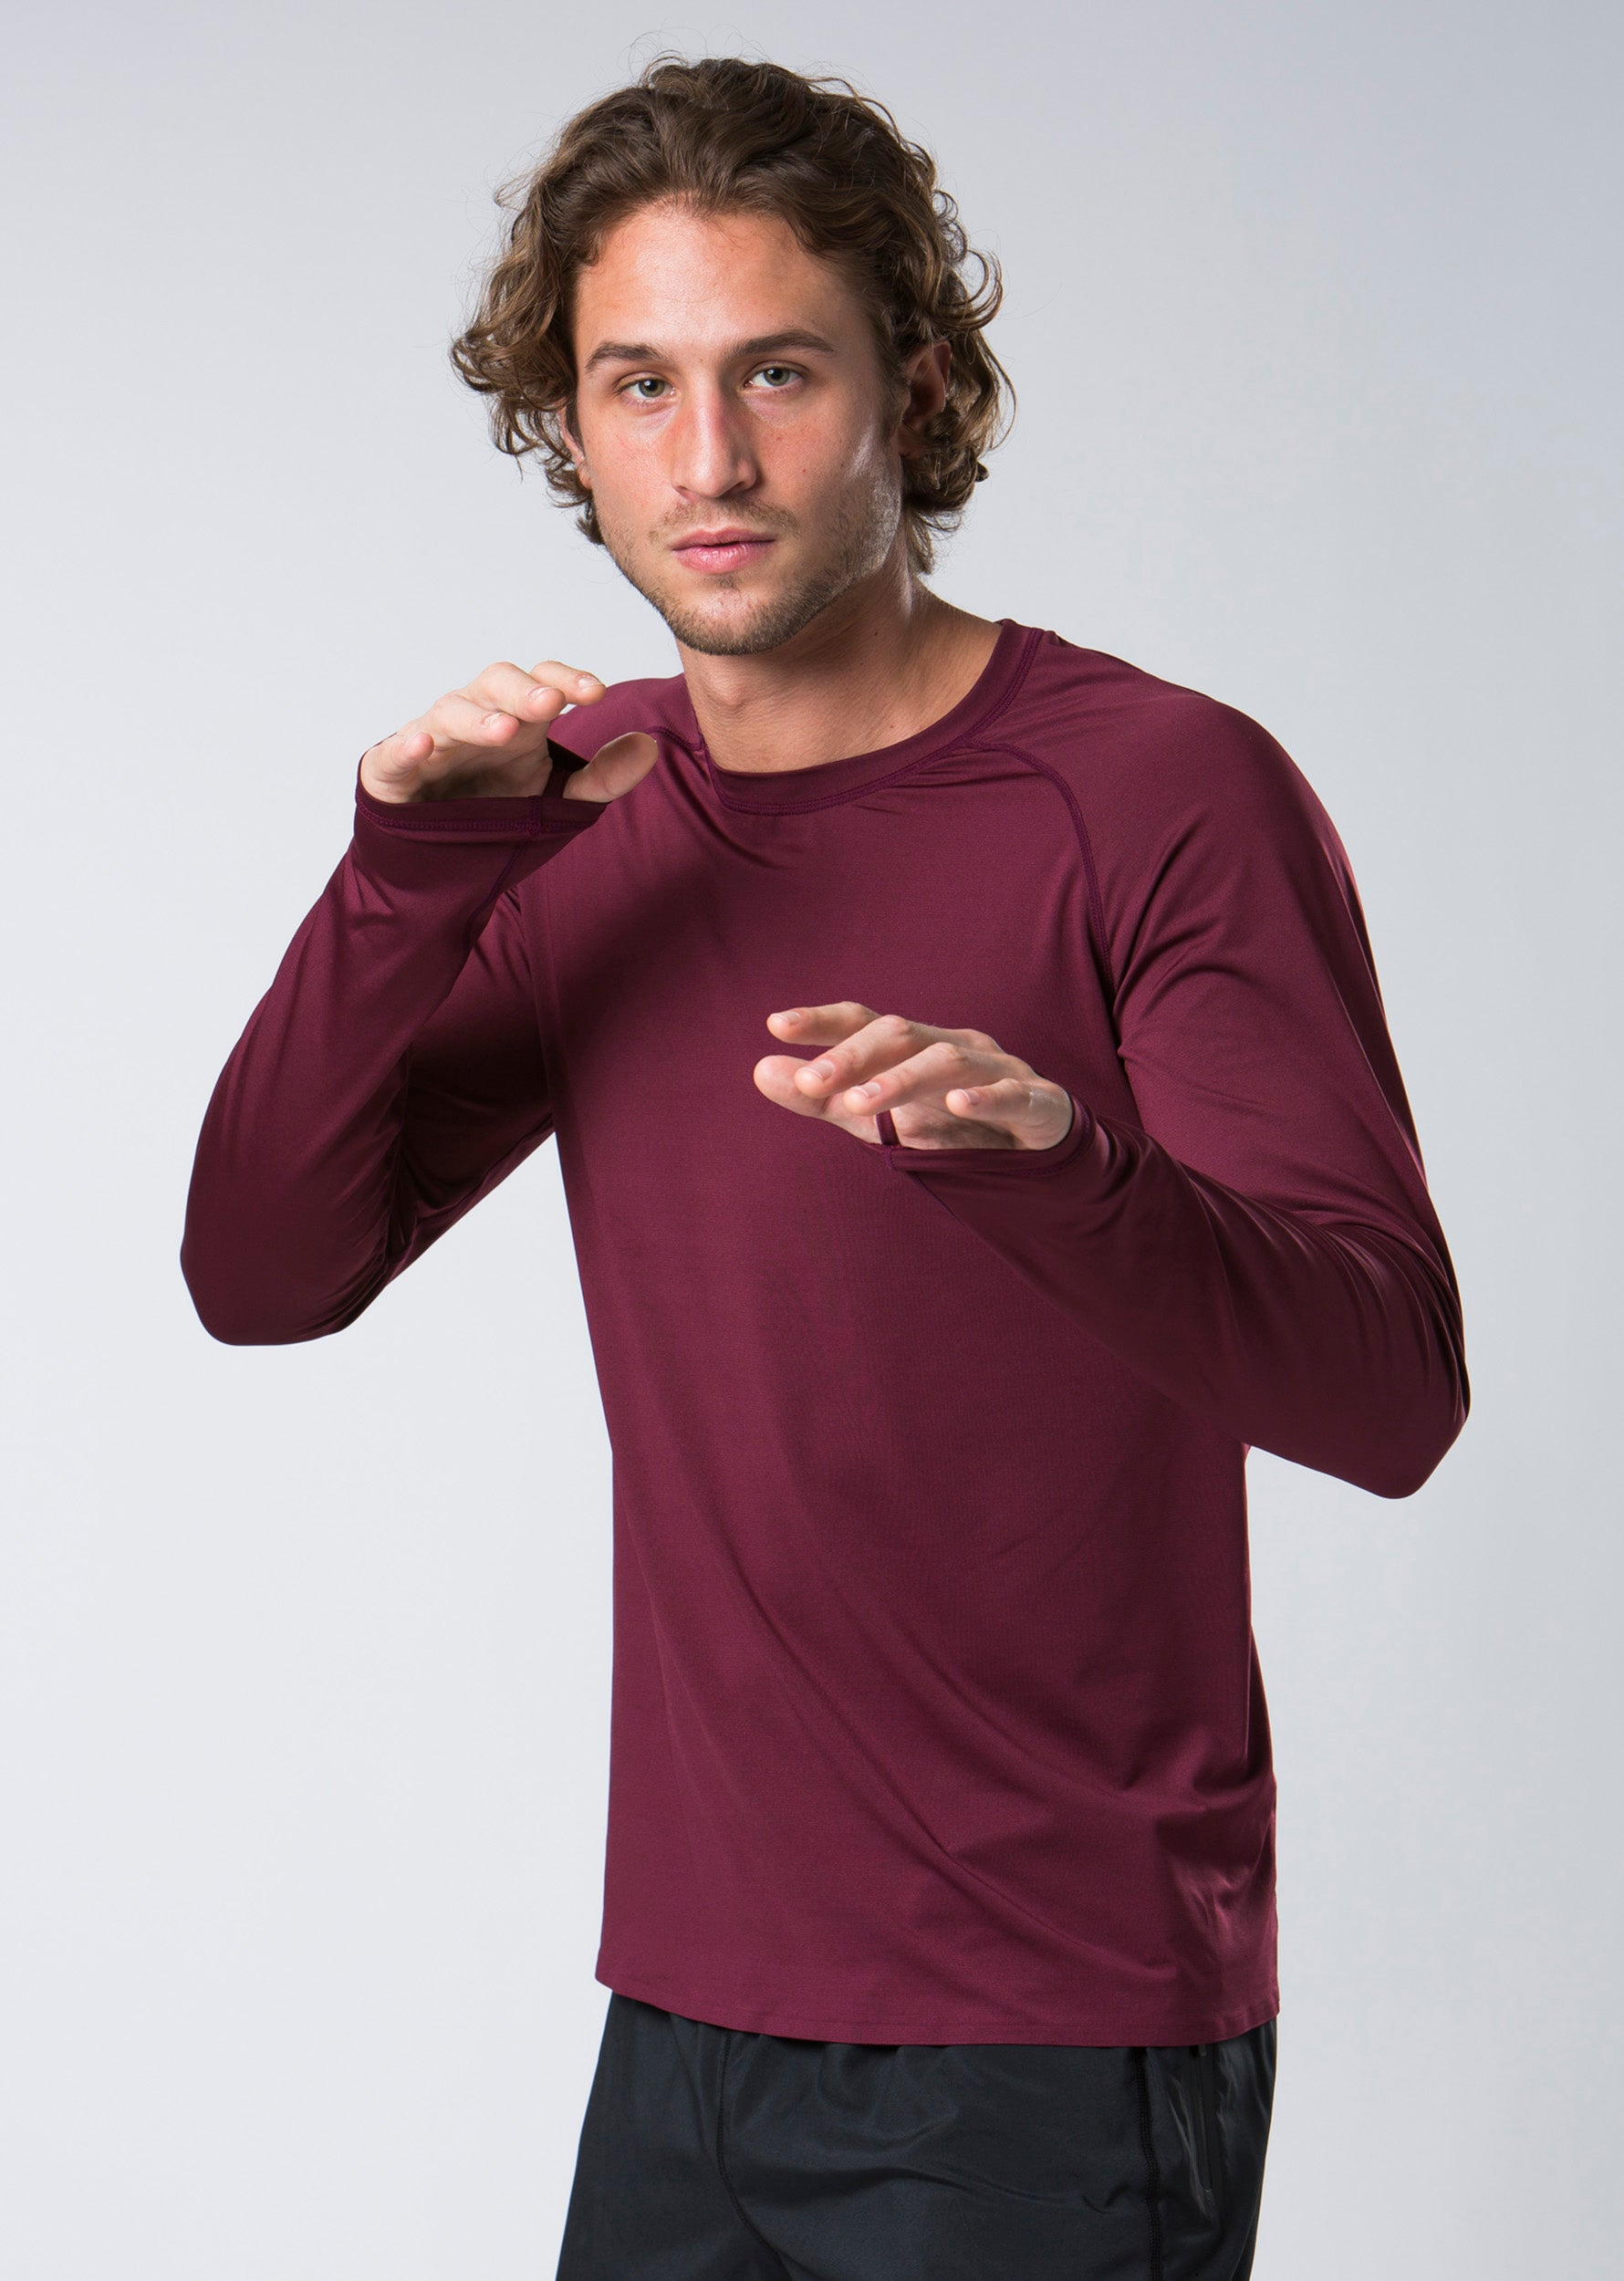 Ascent Long Sleeve Top - Burgundy